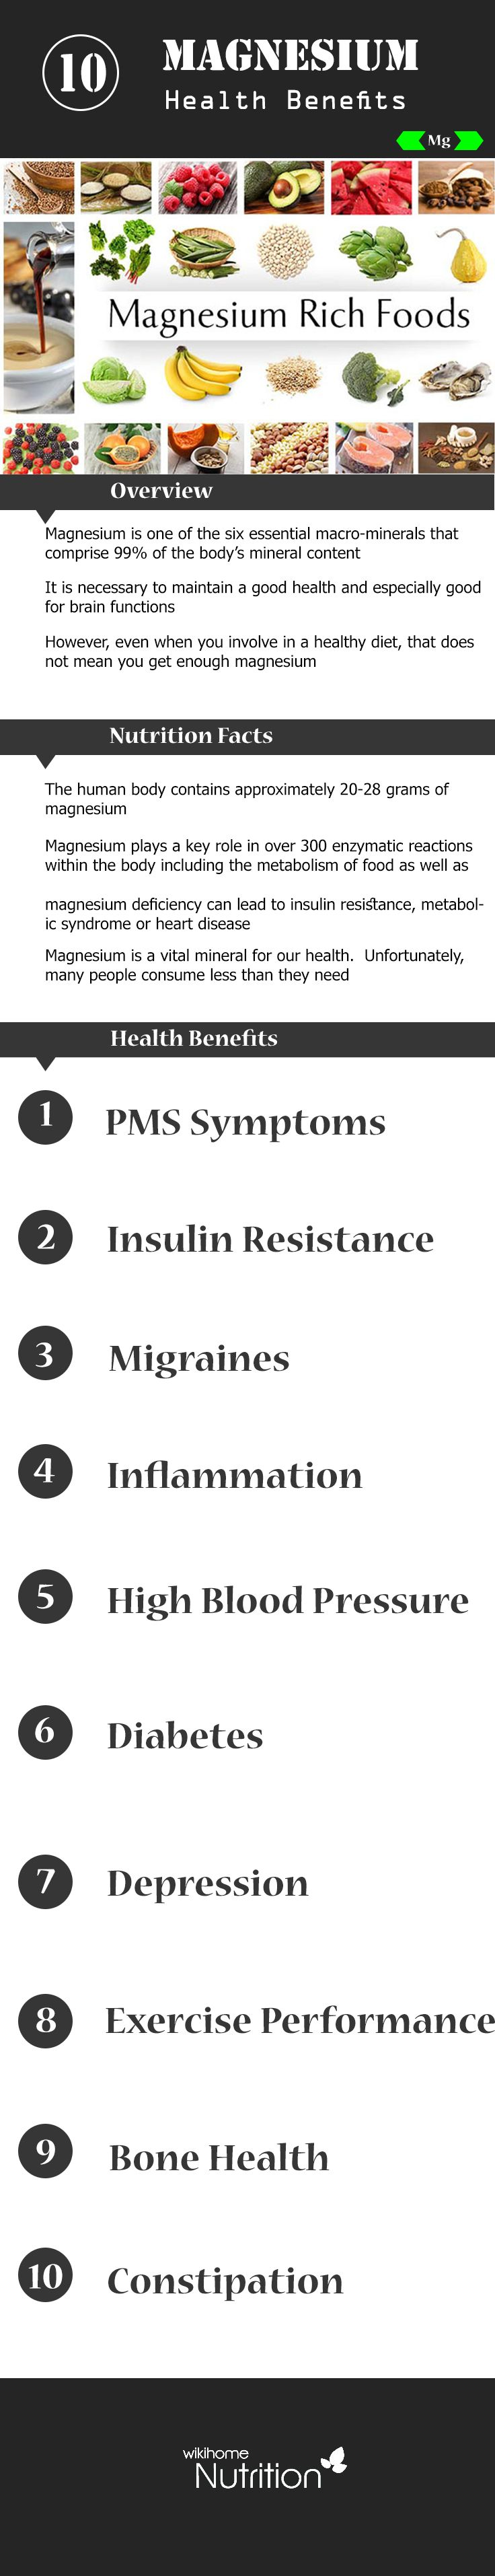 Do not ignore top impressive health benefits of magnesium, one of the six essential macro-minerals.